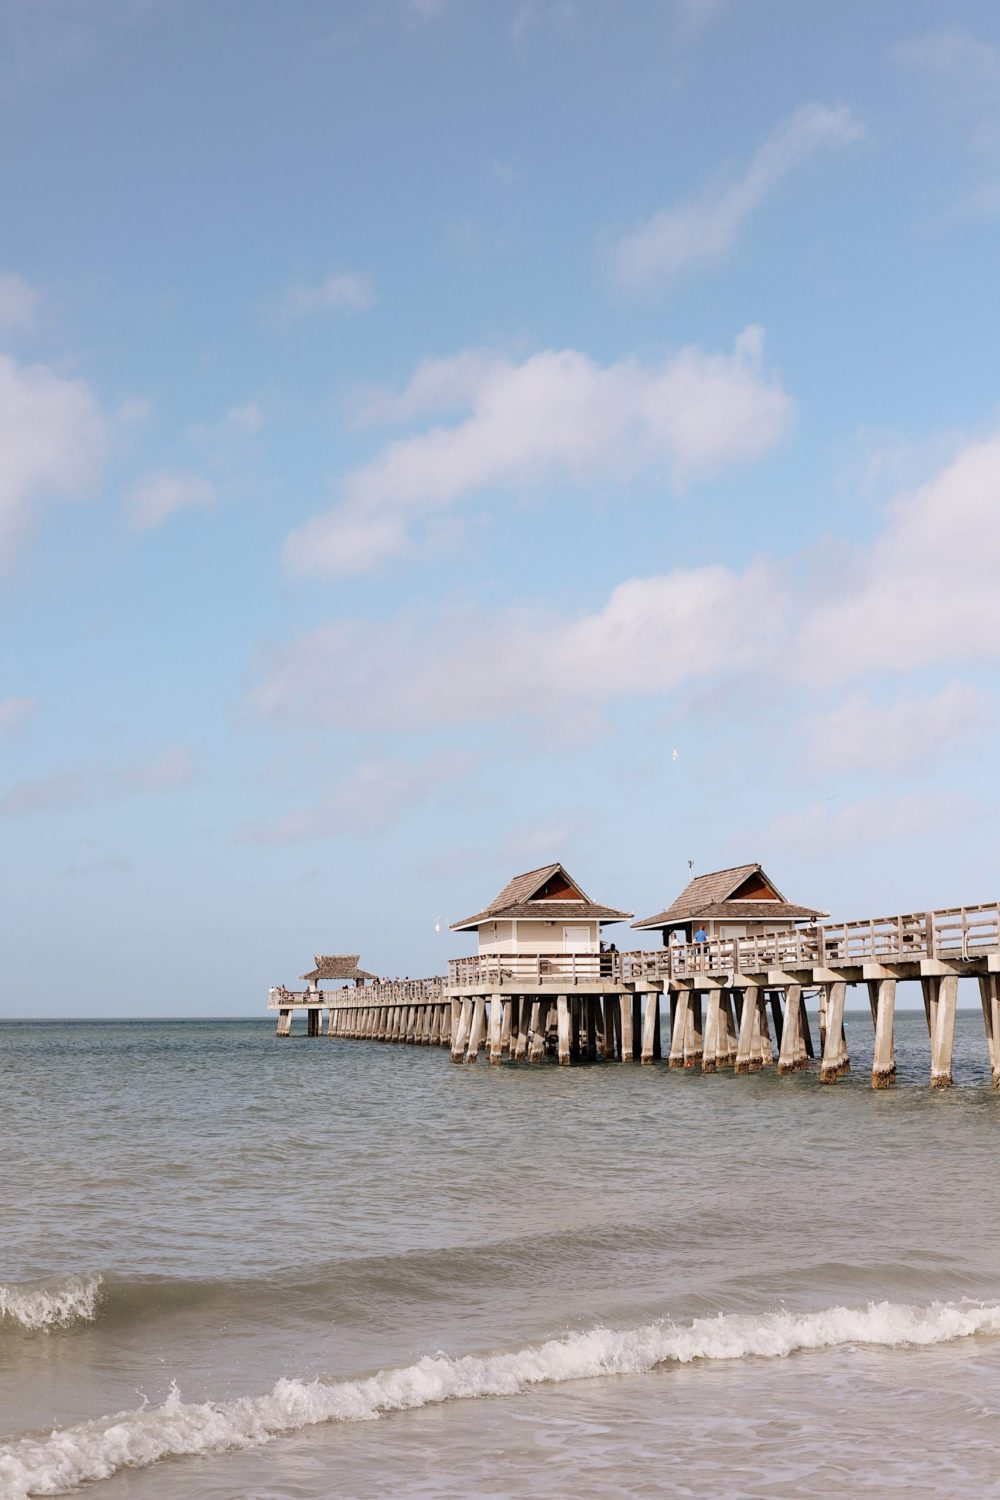 Vacation well in Paradise at the historic landmark Naples Pier. Naples, Marco Island and the Everglades - Florida's Paradise Coast | Spectacular Things to Do in Naples FL This Weekend by popular Florida blog, Fresh Mommy Blog: image of Naples pier.